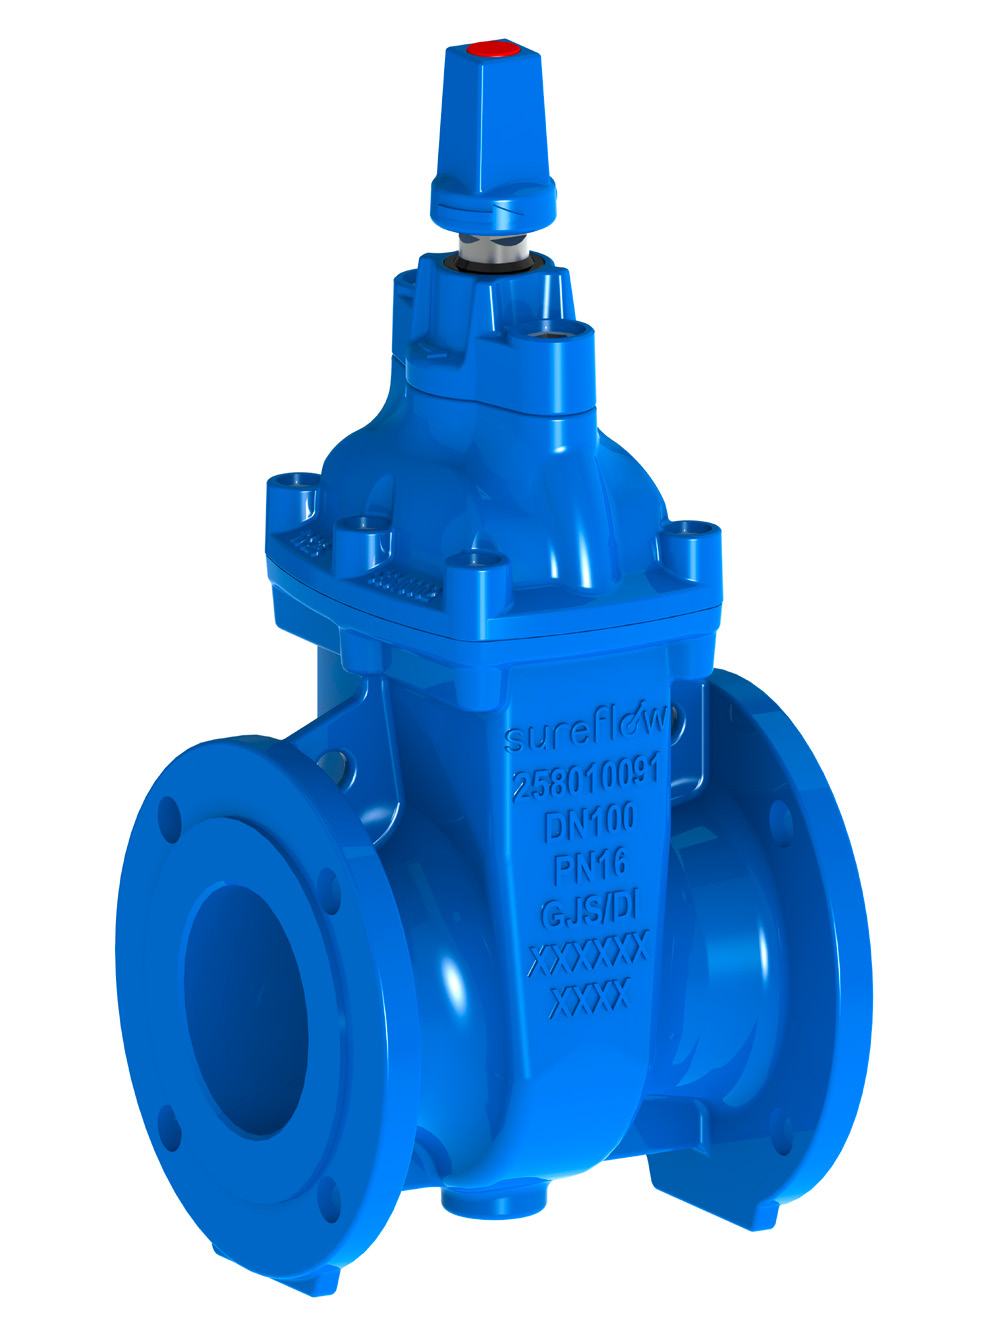 SUREFLOW Metal Seated Gate Valves